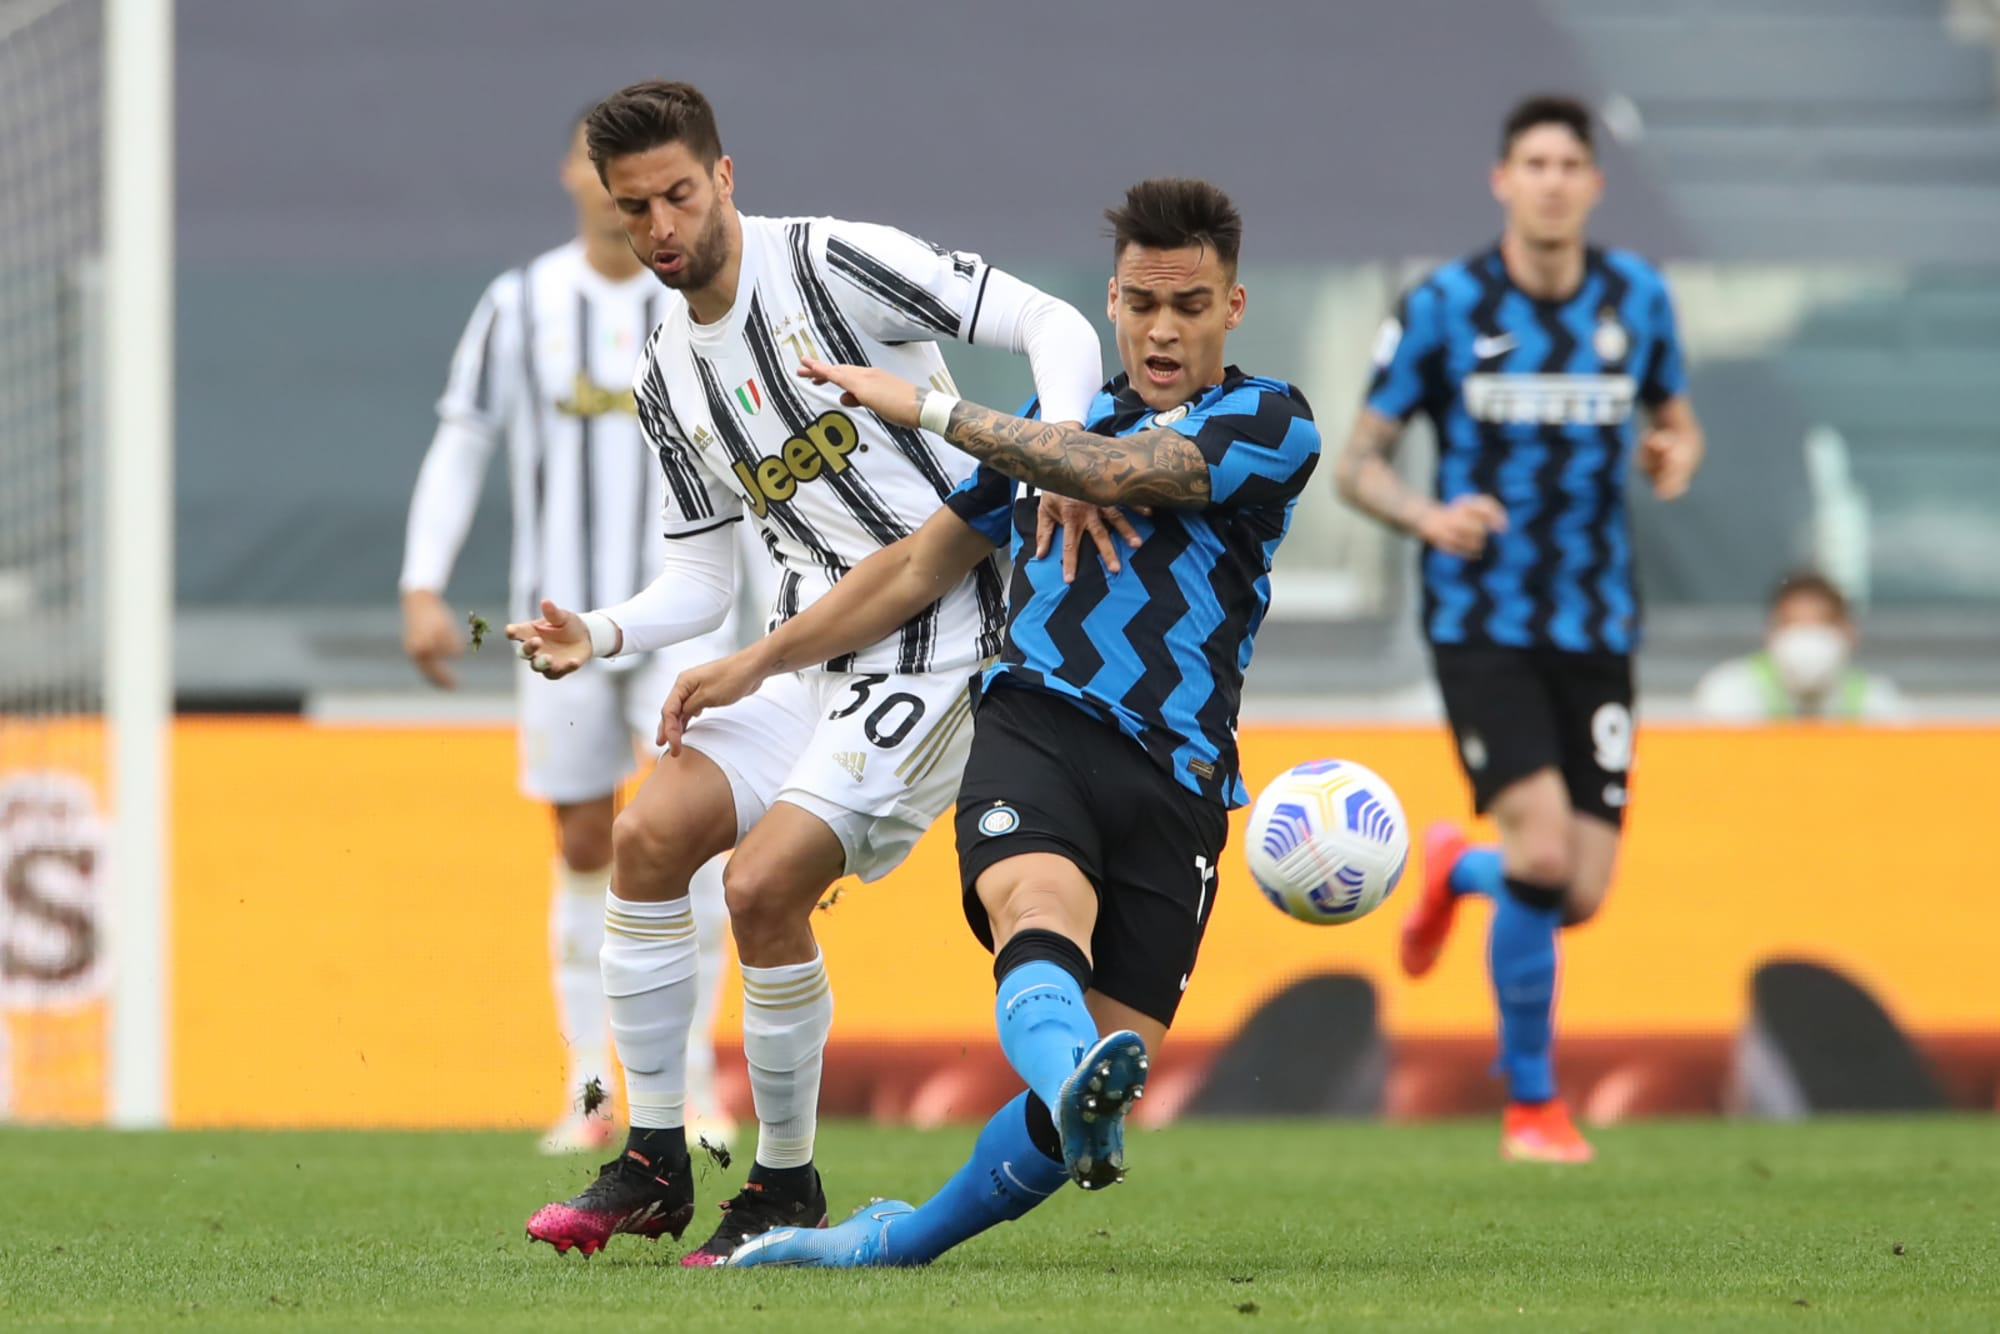 Inter Milan vs Juventus preview: How to watch on TV, live stream, team news & prediction